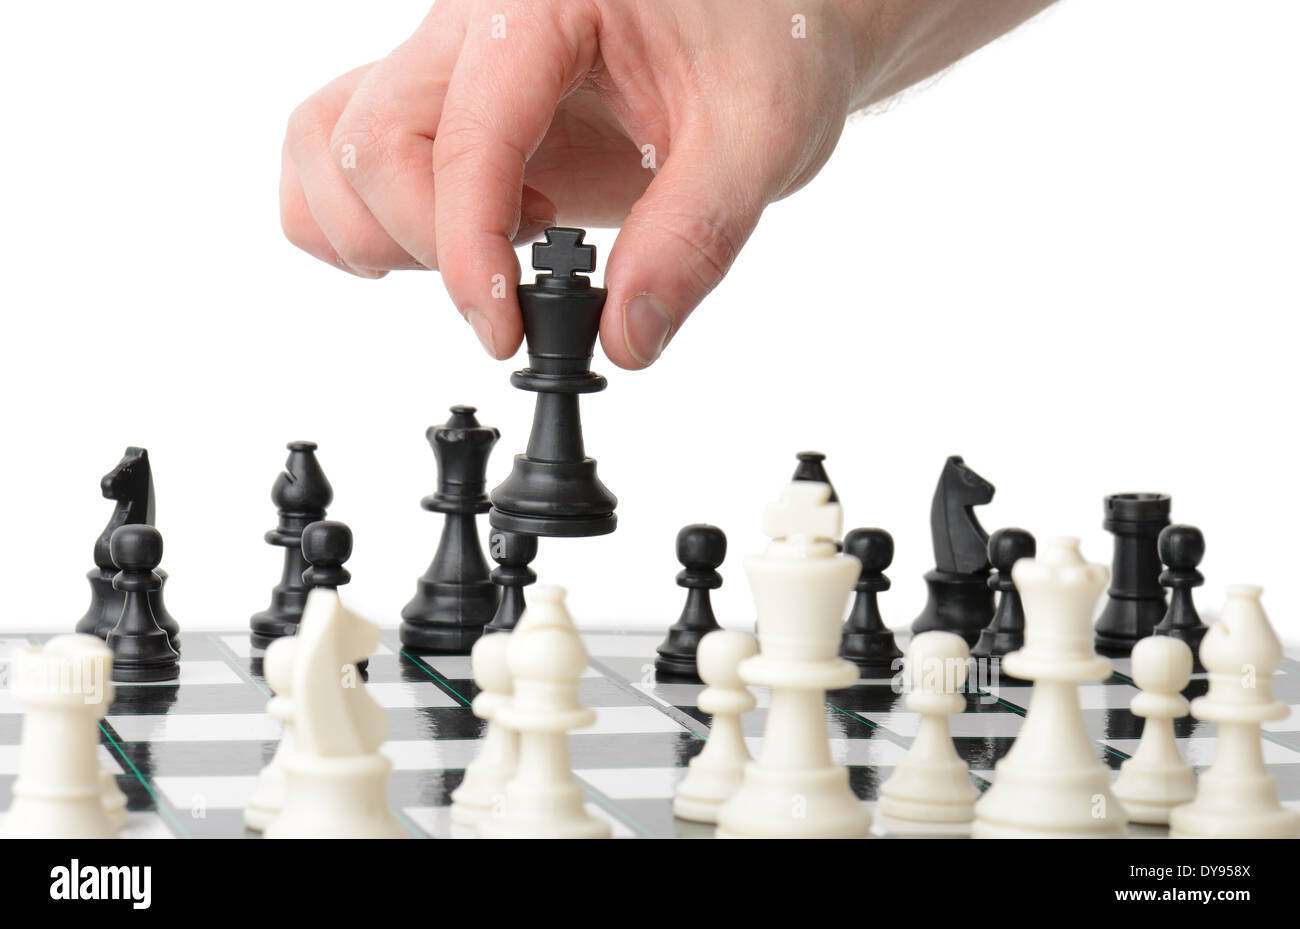 Making a strategic move isolated on a white background - Stock Image